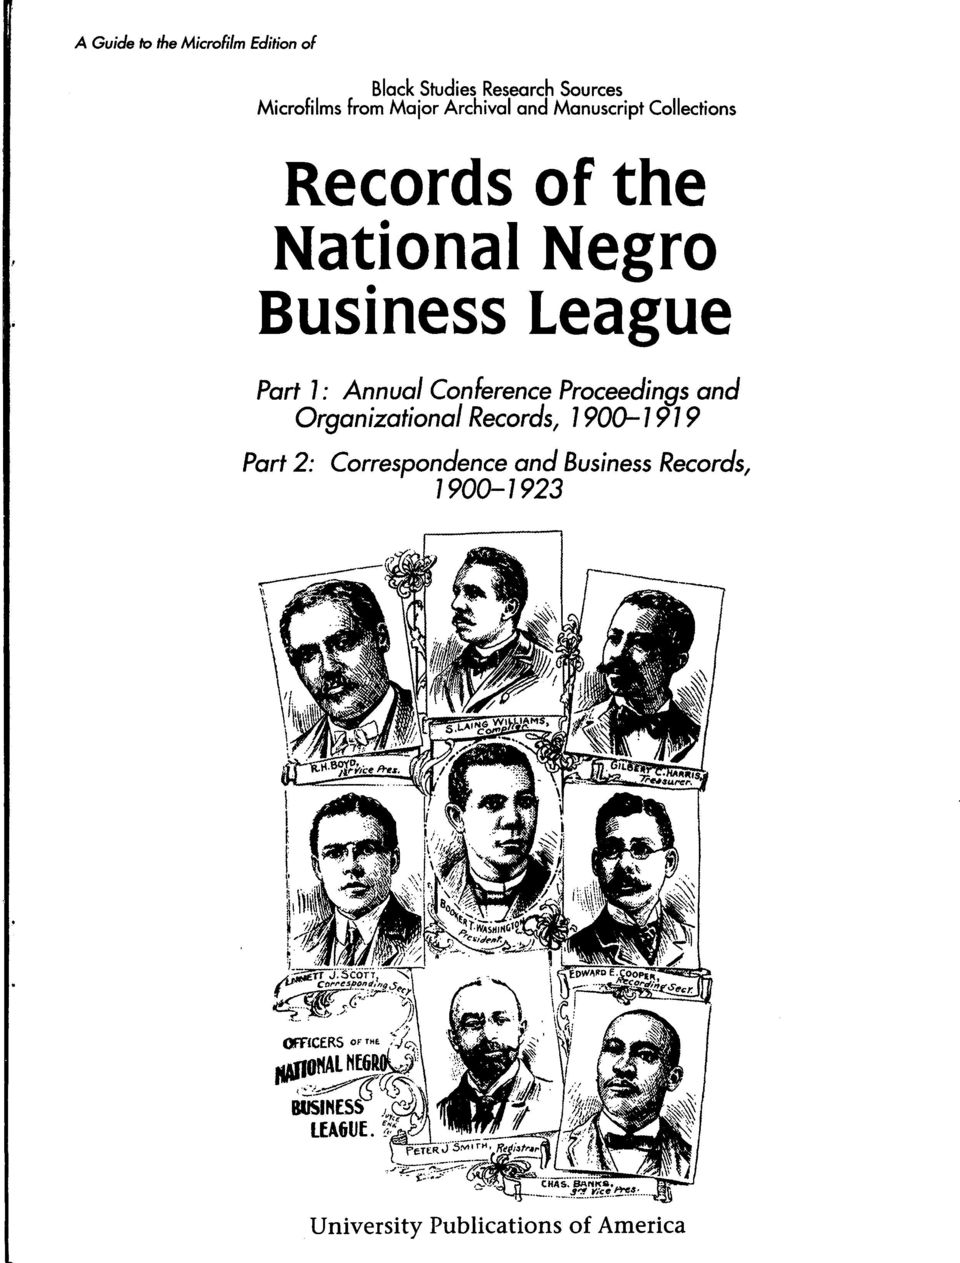 League Part 1: Annual Conference Proceedings and Organizational Records, 1900-1919